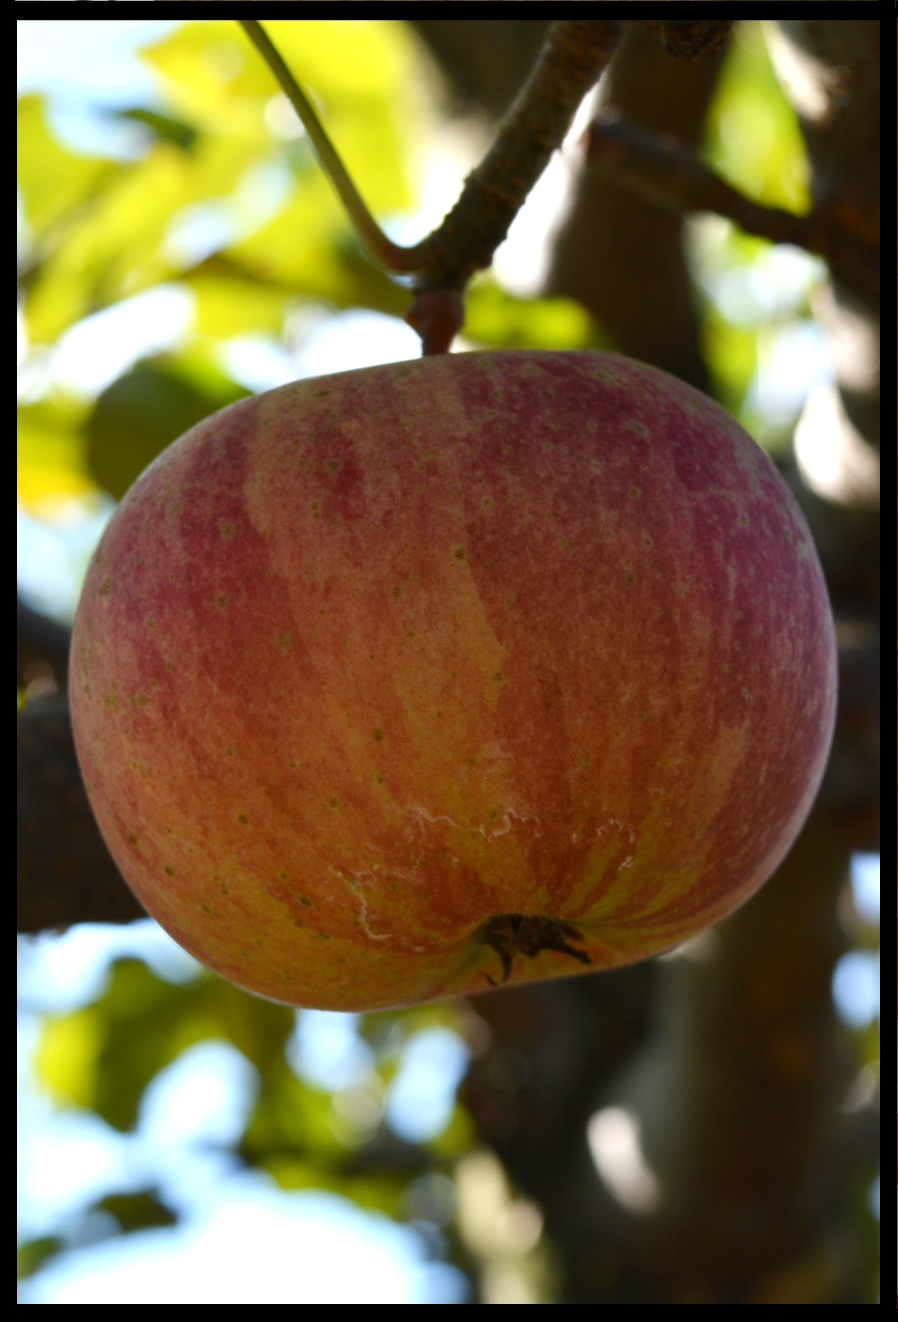 red and yellow striped apple hanging in a tree